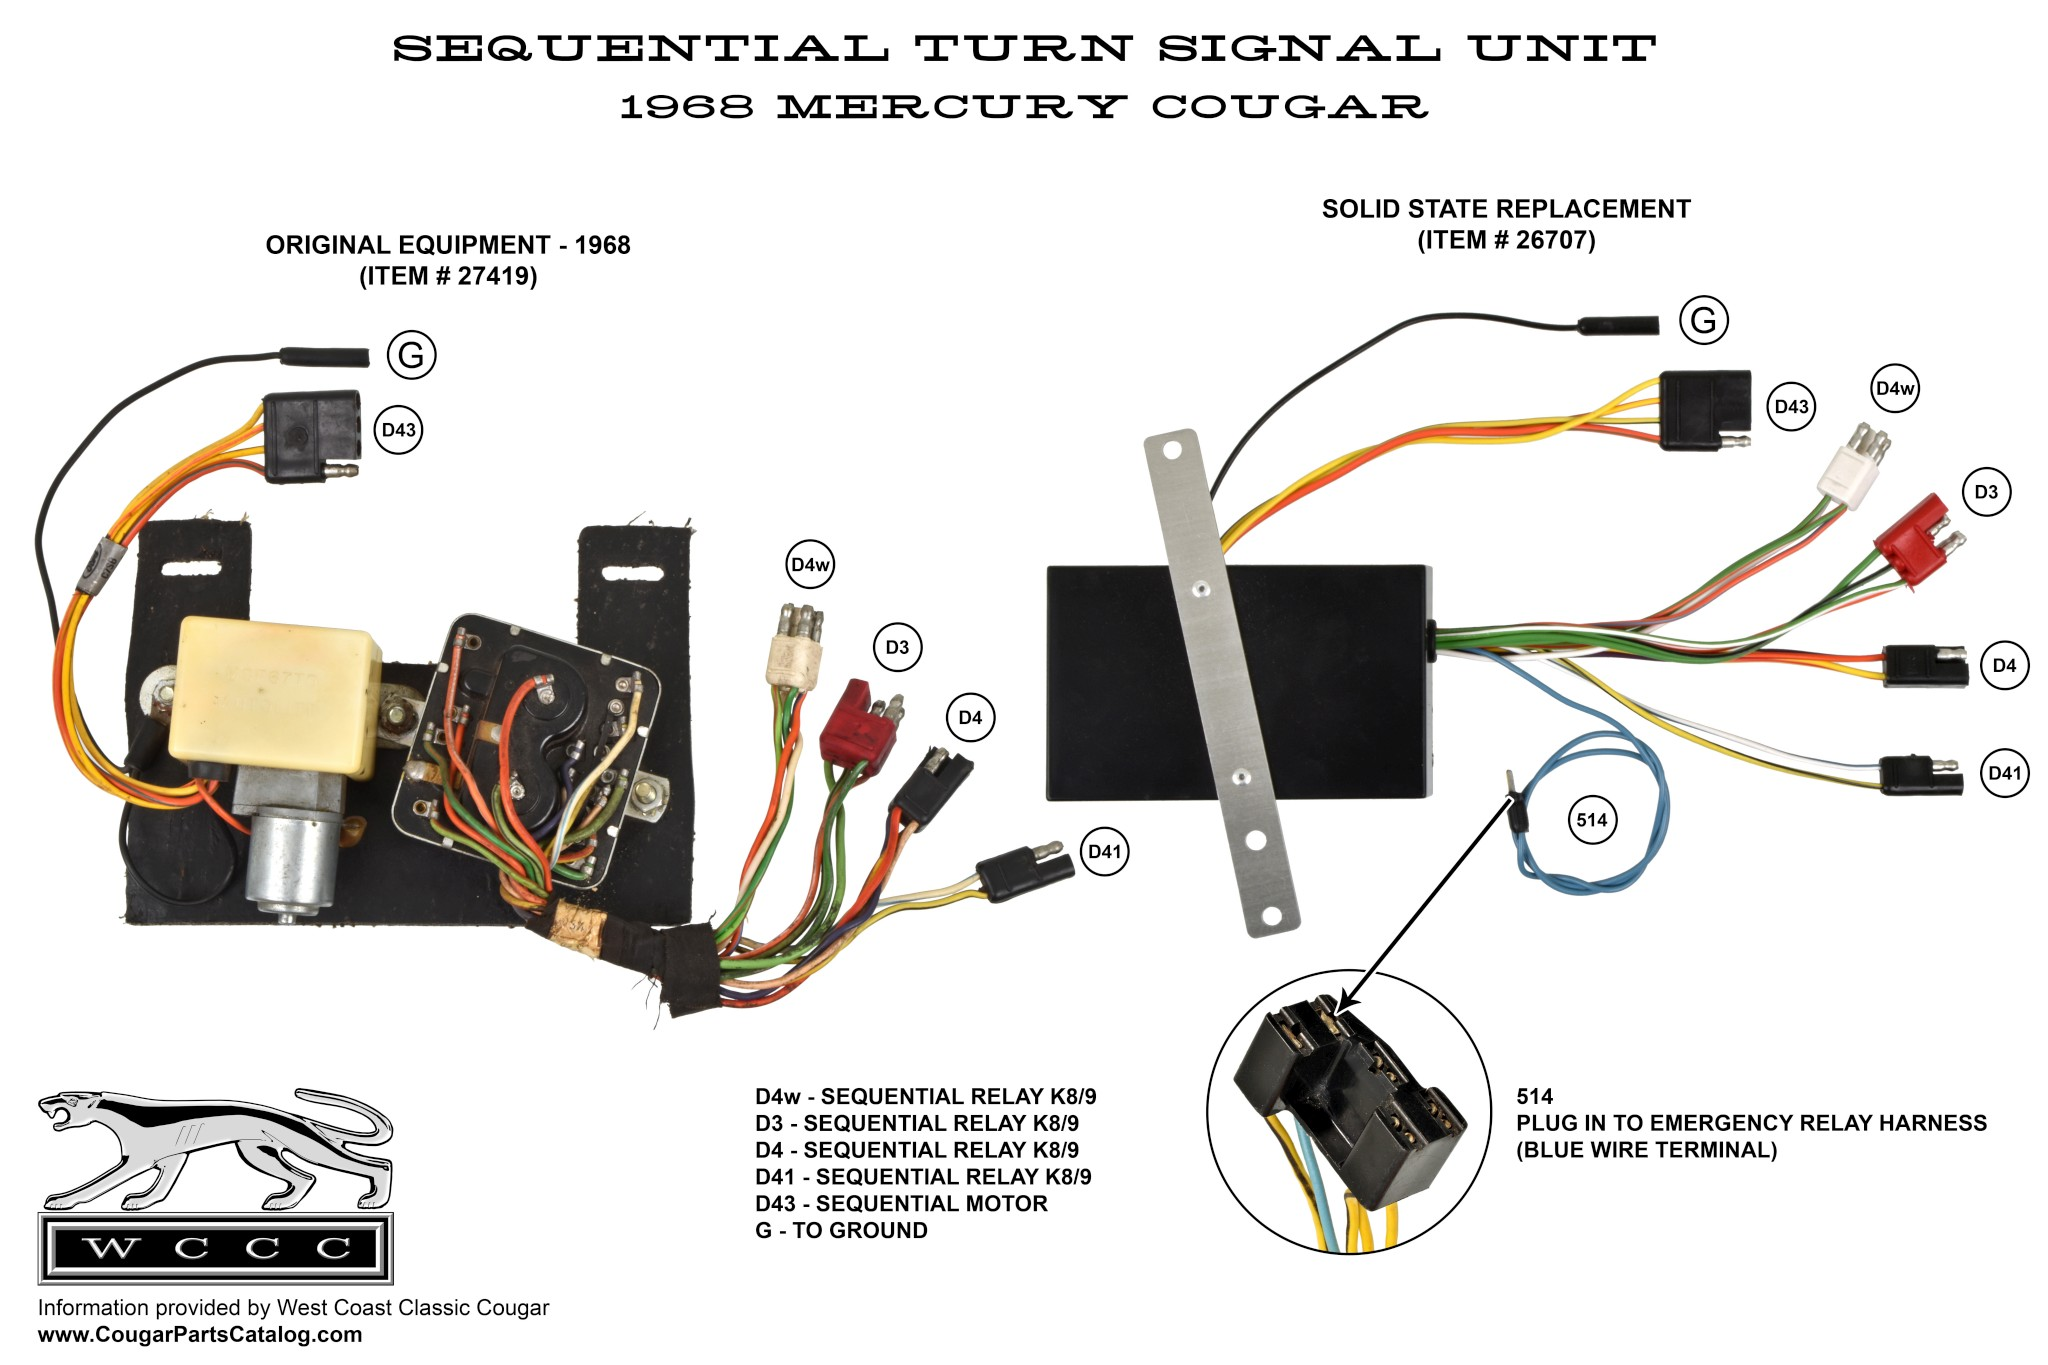 Sequential Turn Signal Assembly